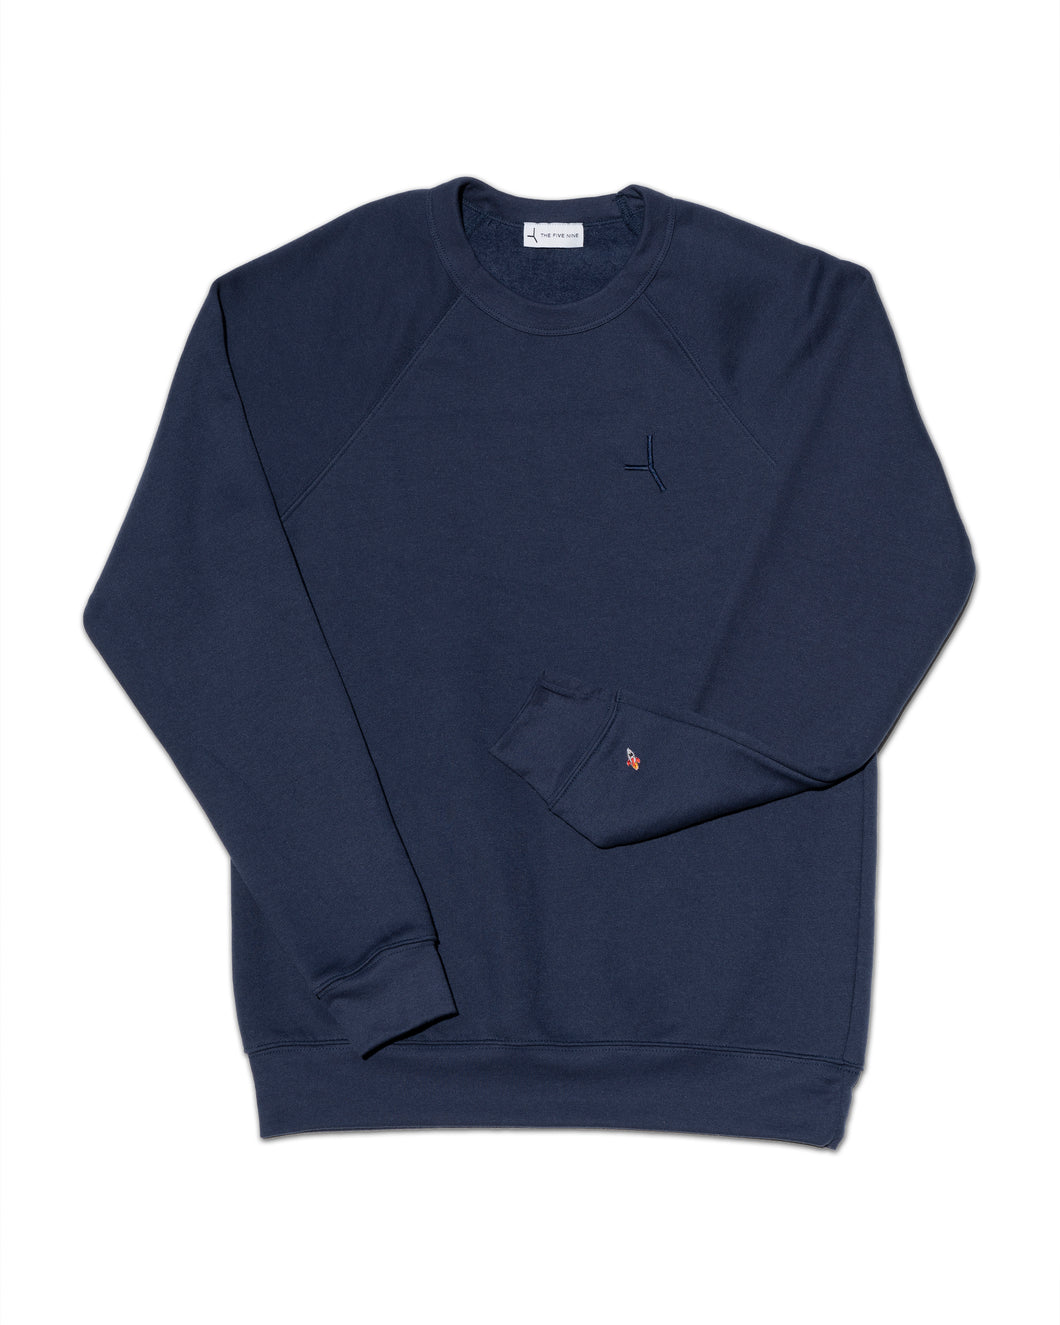 🚀 Sweatshirt - Deep blue